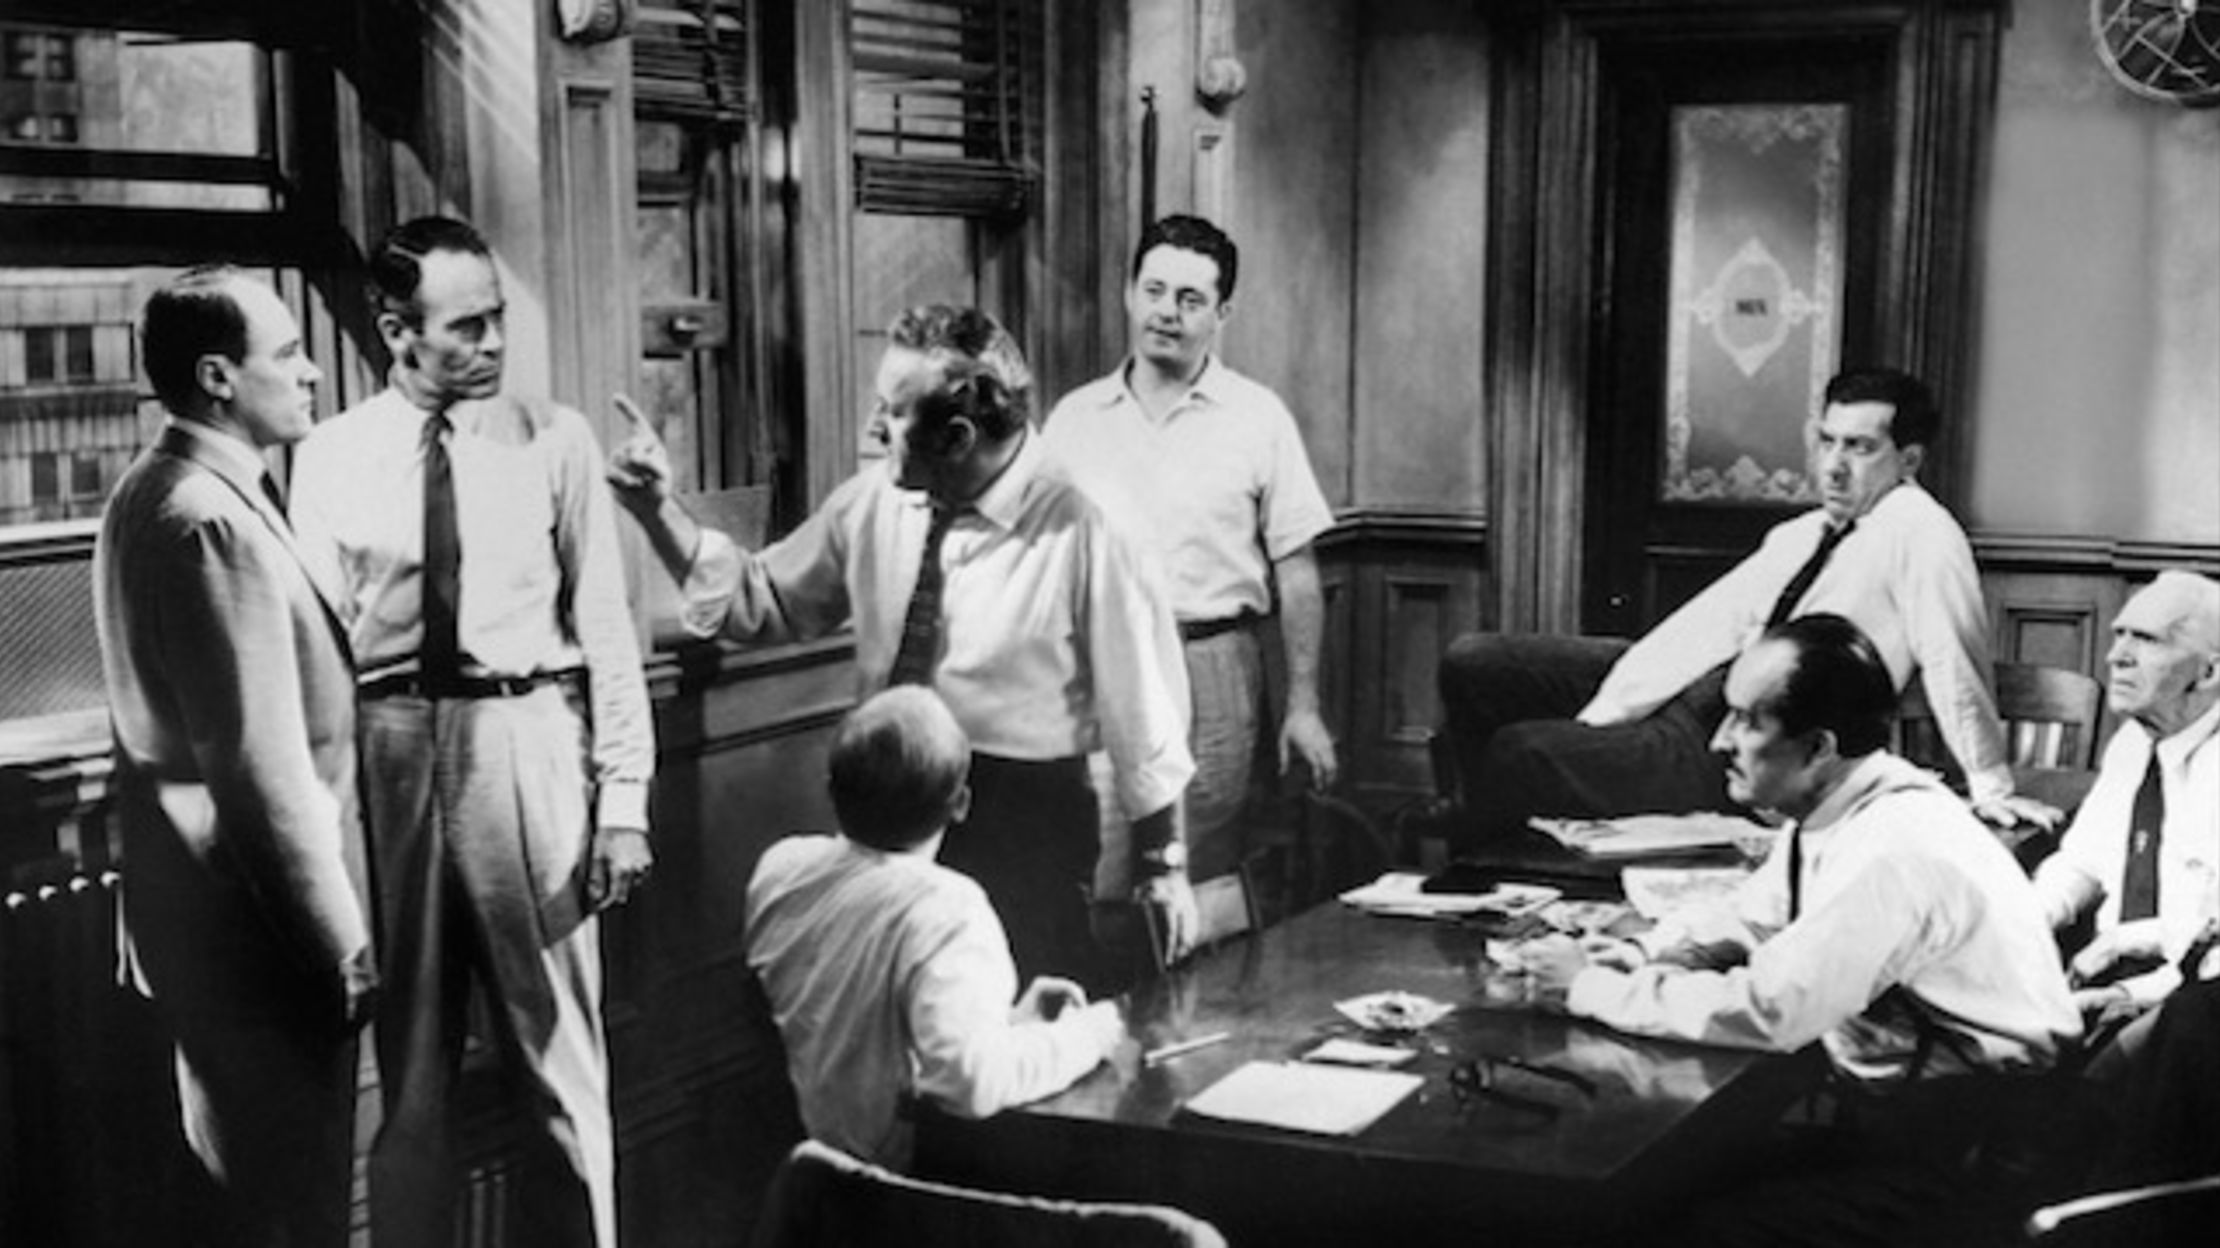 Subscribercast #51 – 12 Angry Men